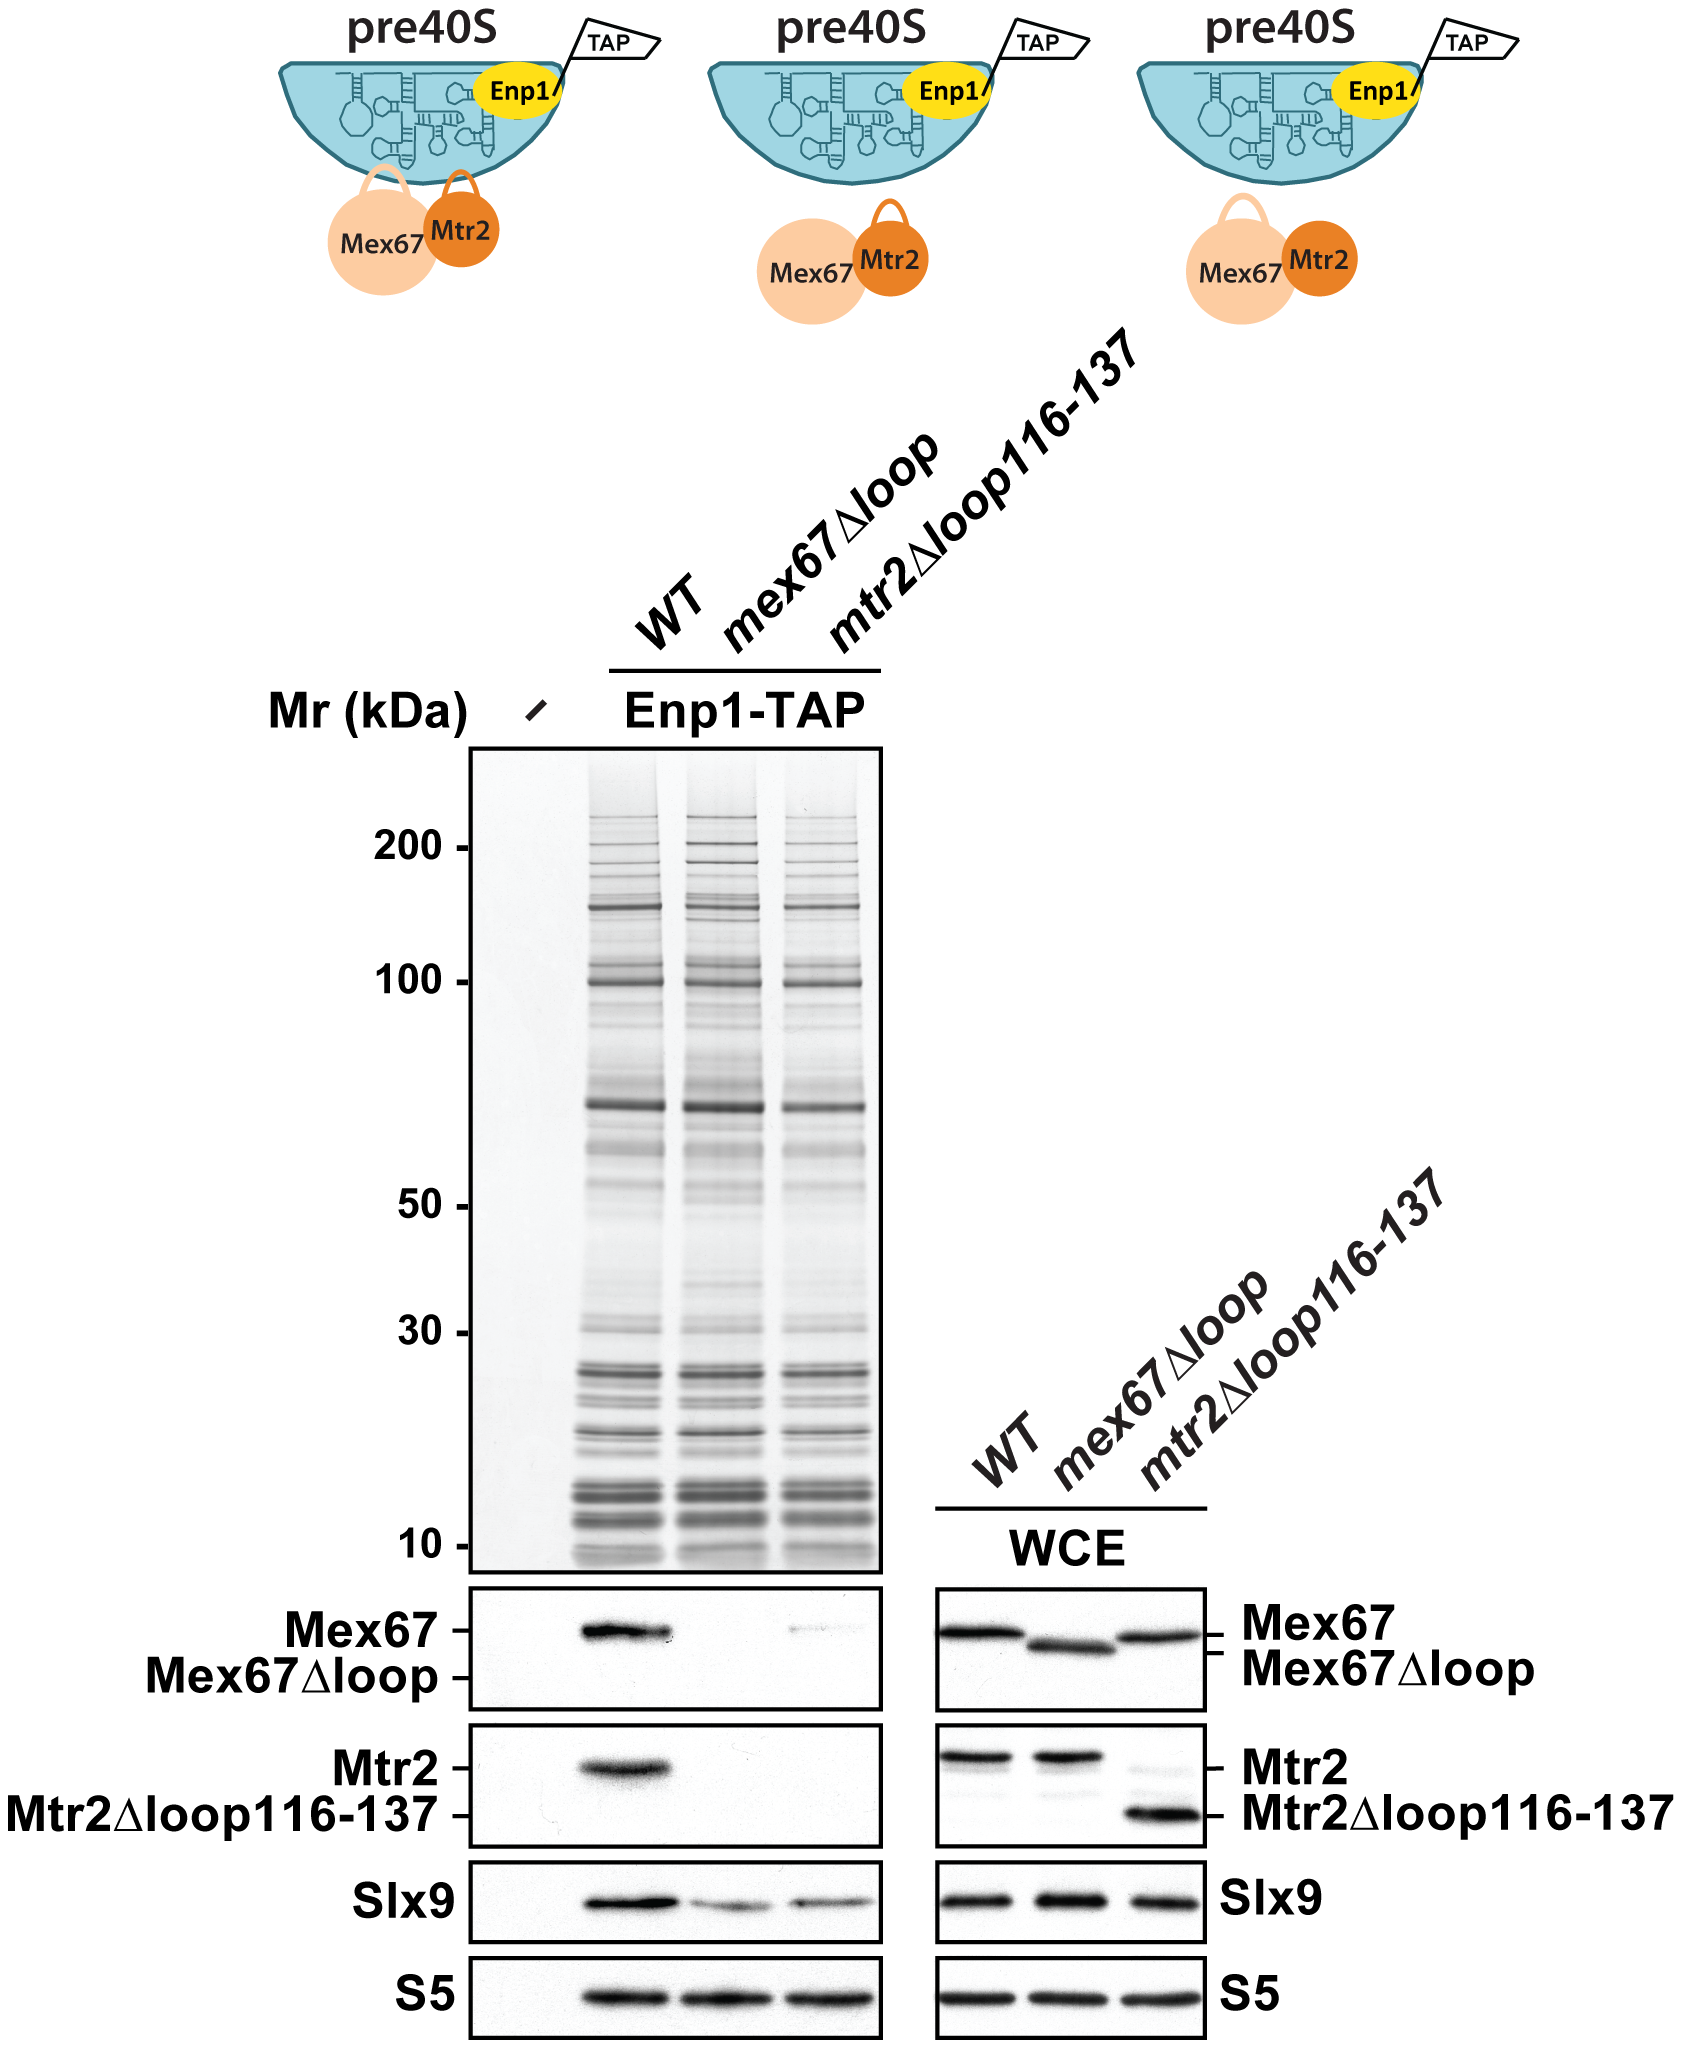 Mex67-Mtr2 bind pre40S subunits <i>via</i> loops emanating from their NTF2-like domains.